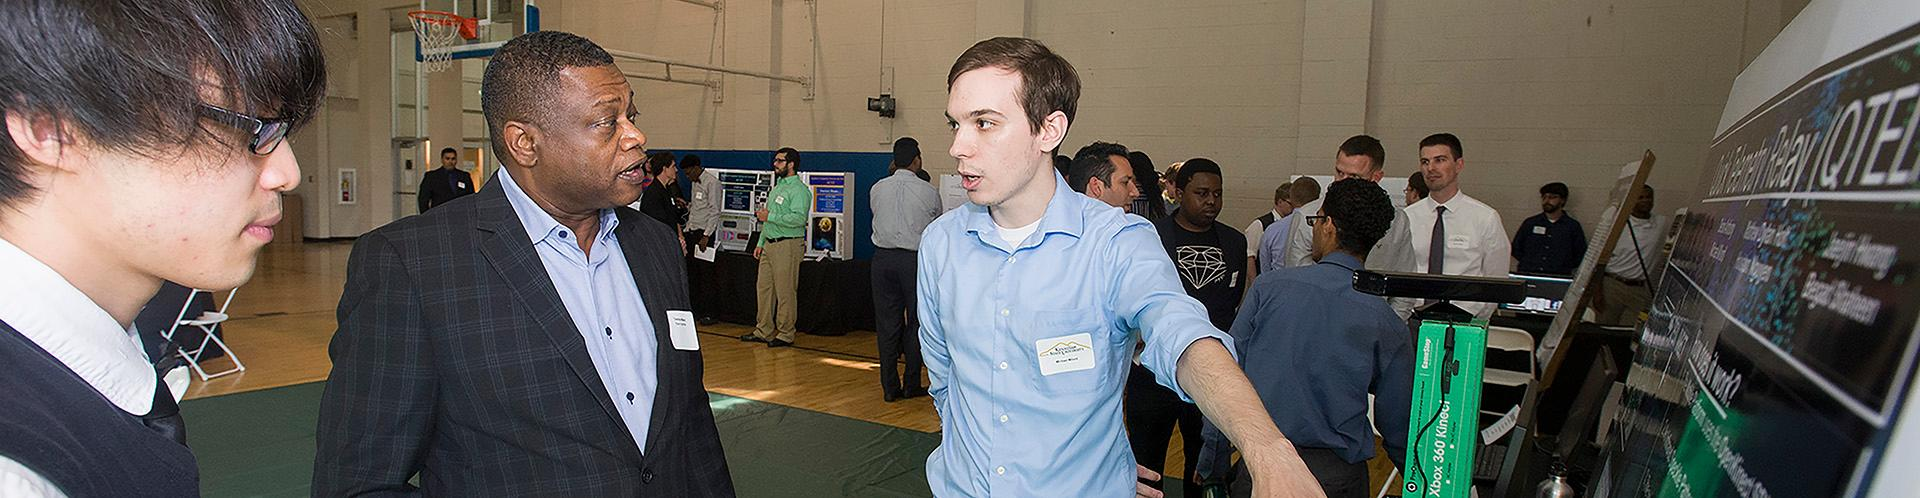 Industry professionals impressed by students' technology talent